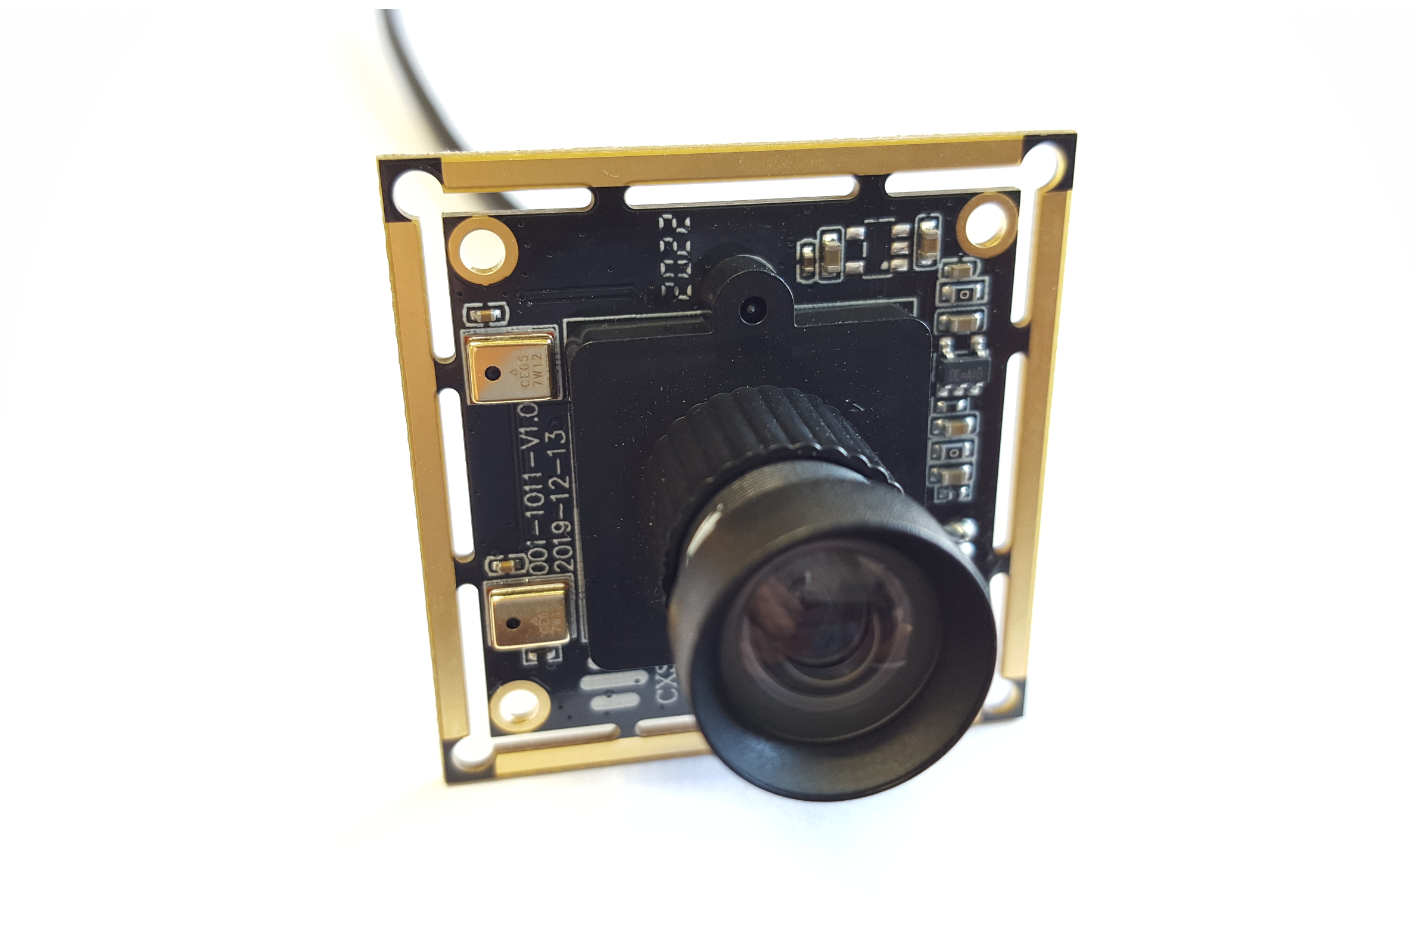 4K (8MP), Low-light Sensitivity, Fixed Focus, HDR Camera Module with SONY IMX415 sensor